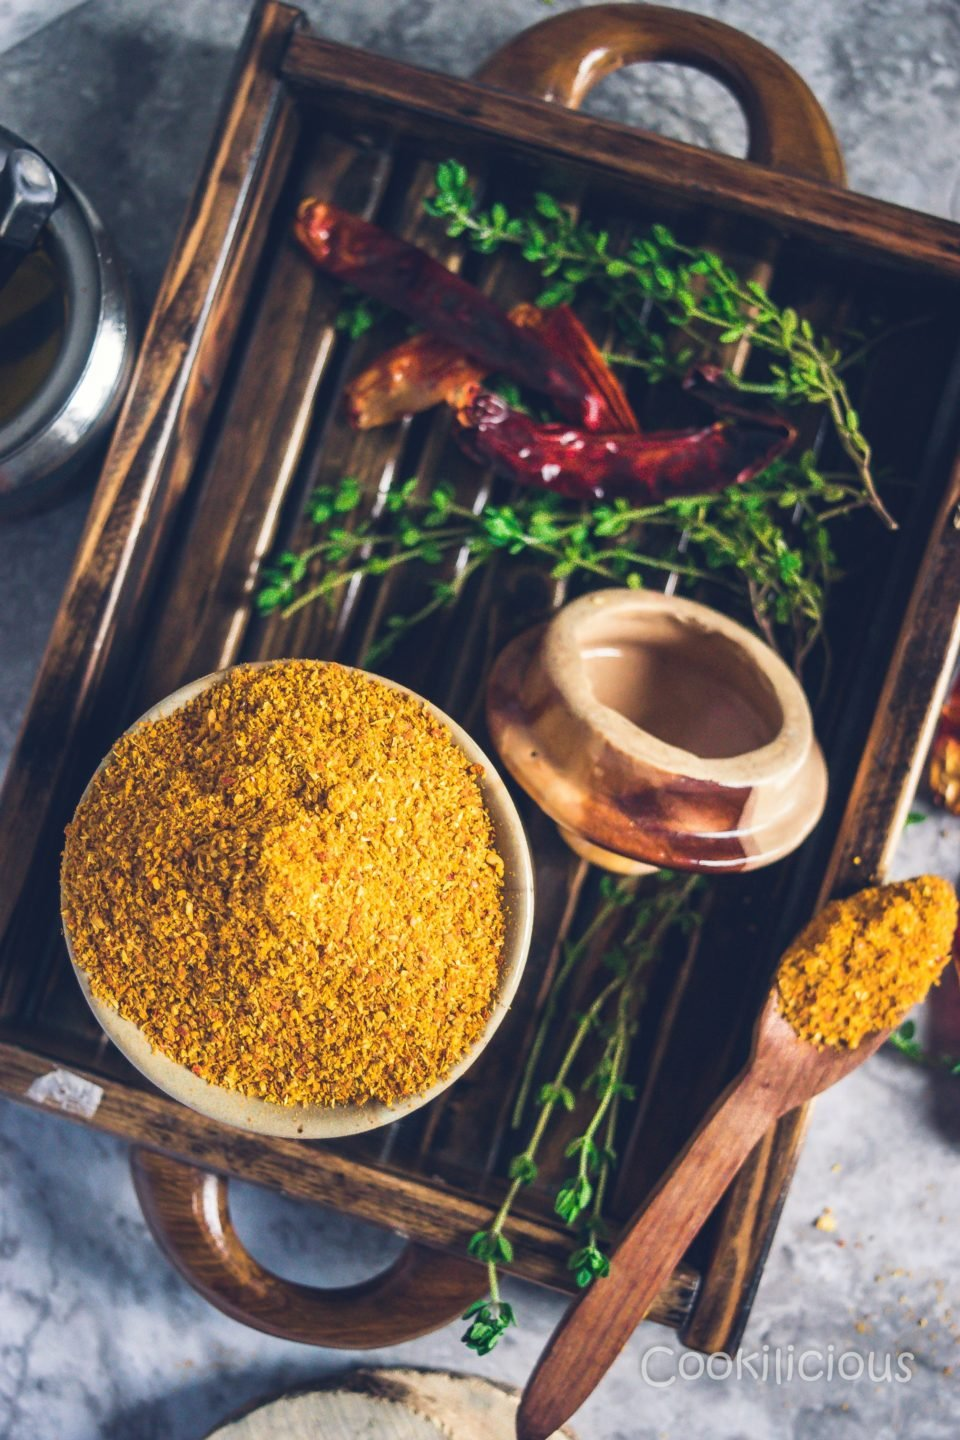 A wooden tray with a jar filled with sambhar powder with some thyme and red chillies besides it